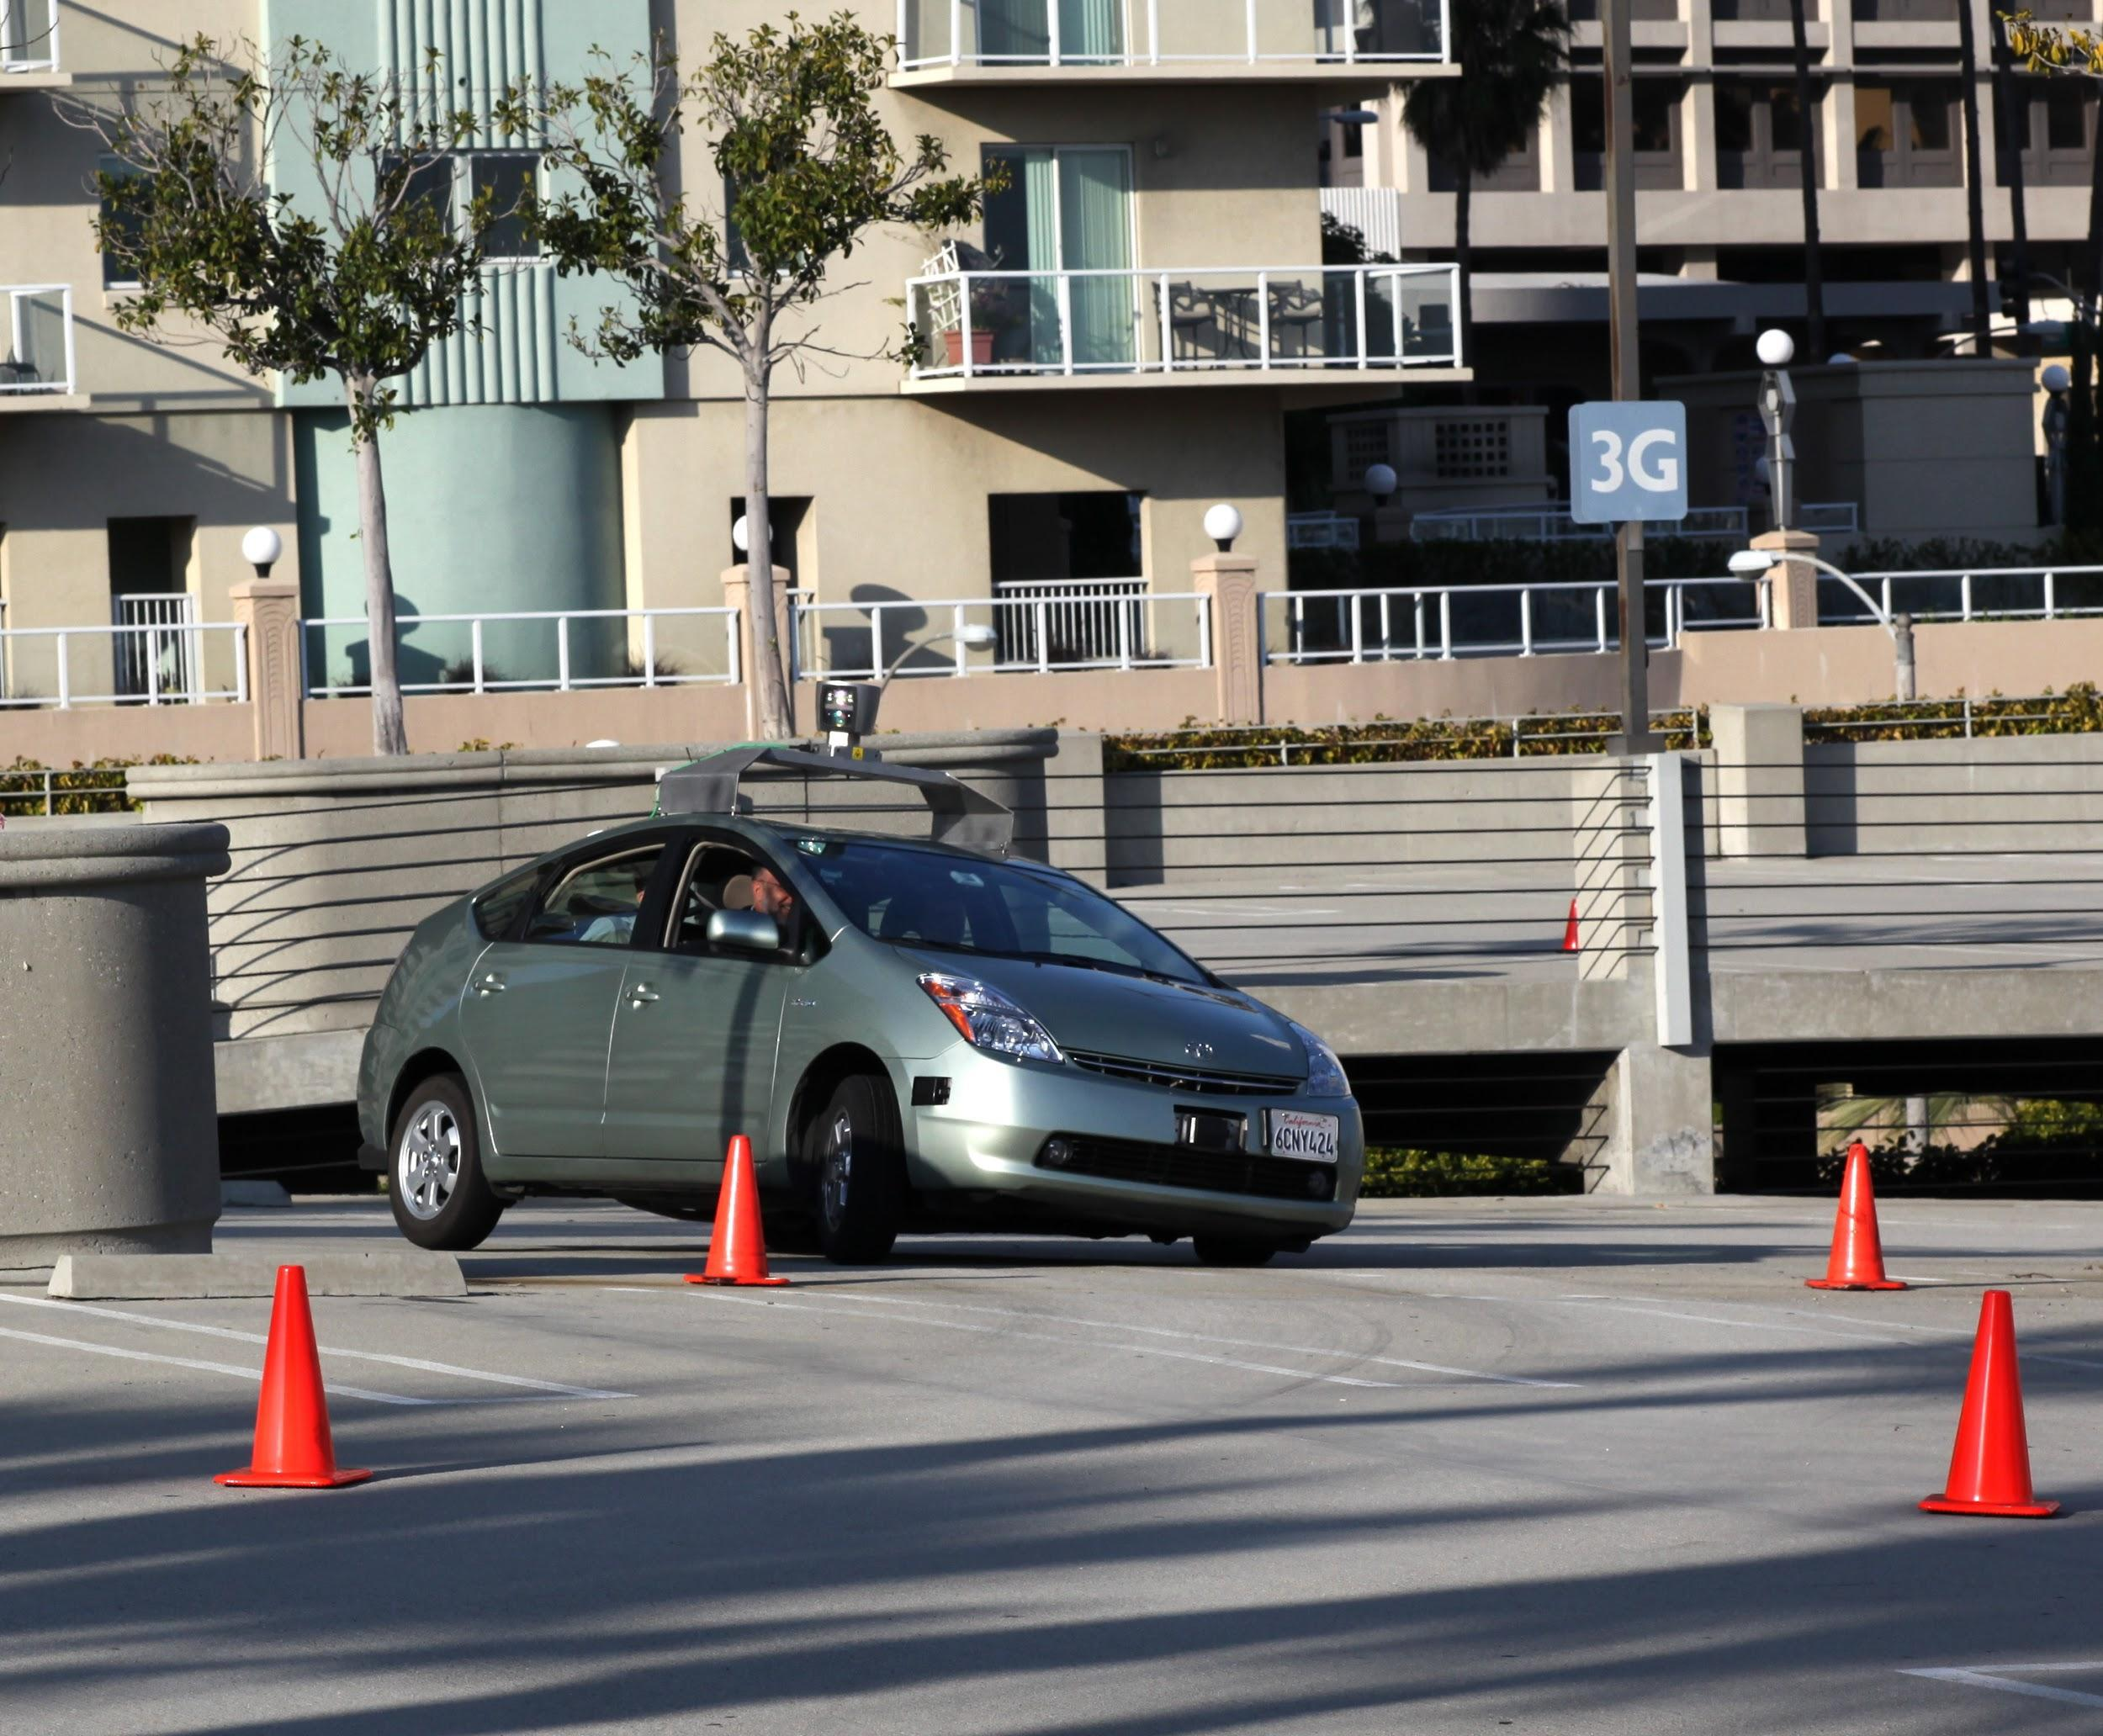 New Car Design Technologies To Prevent Accidents